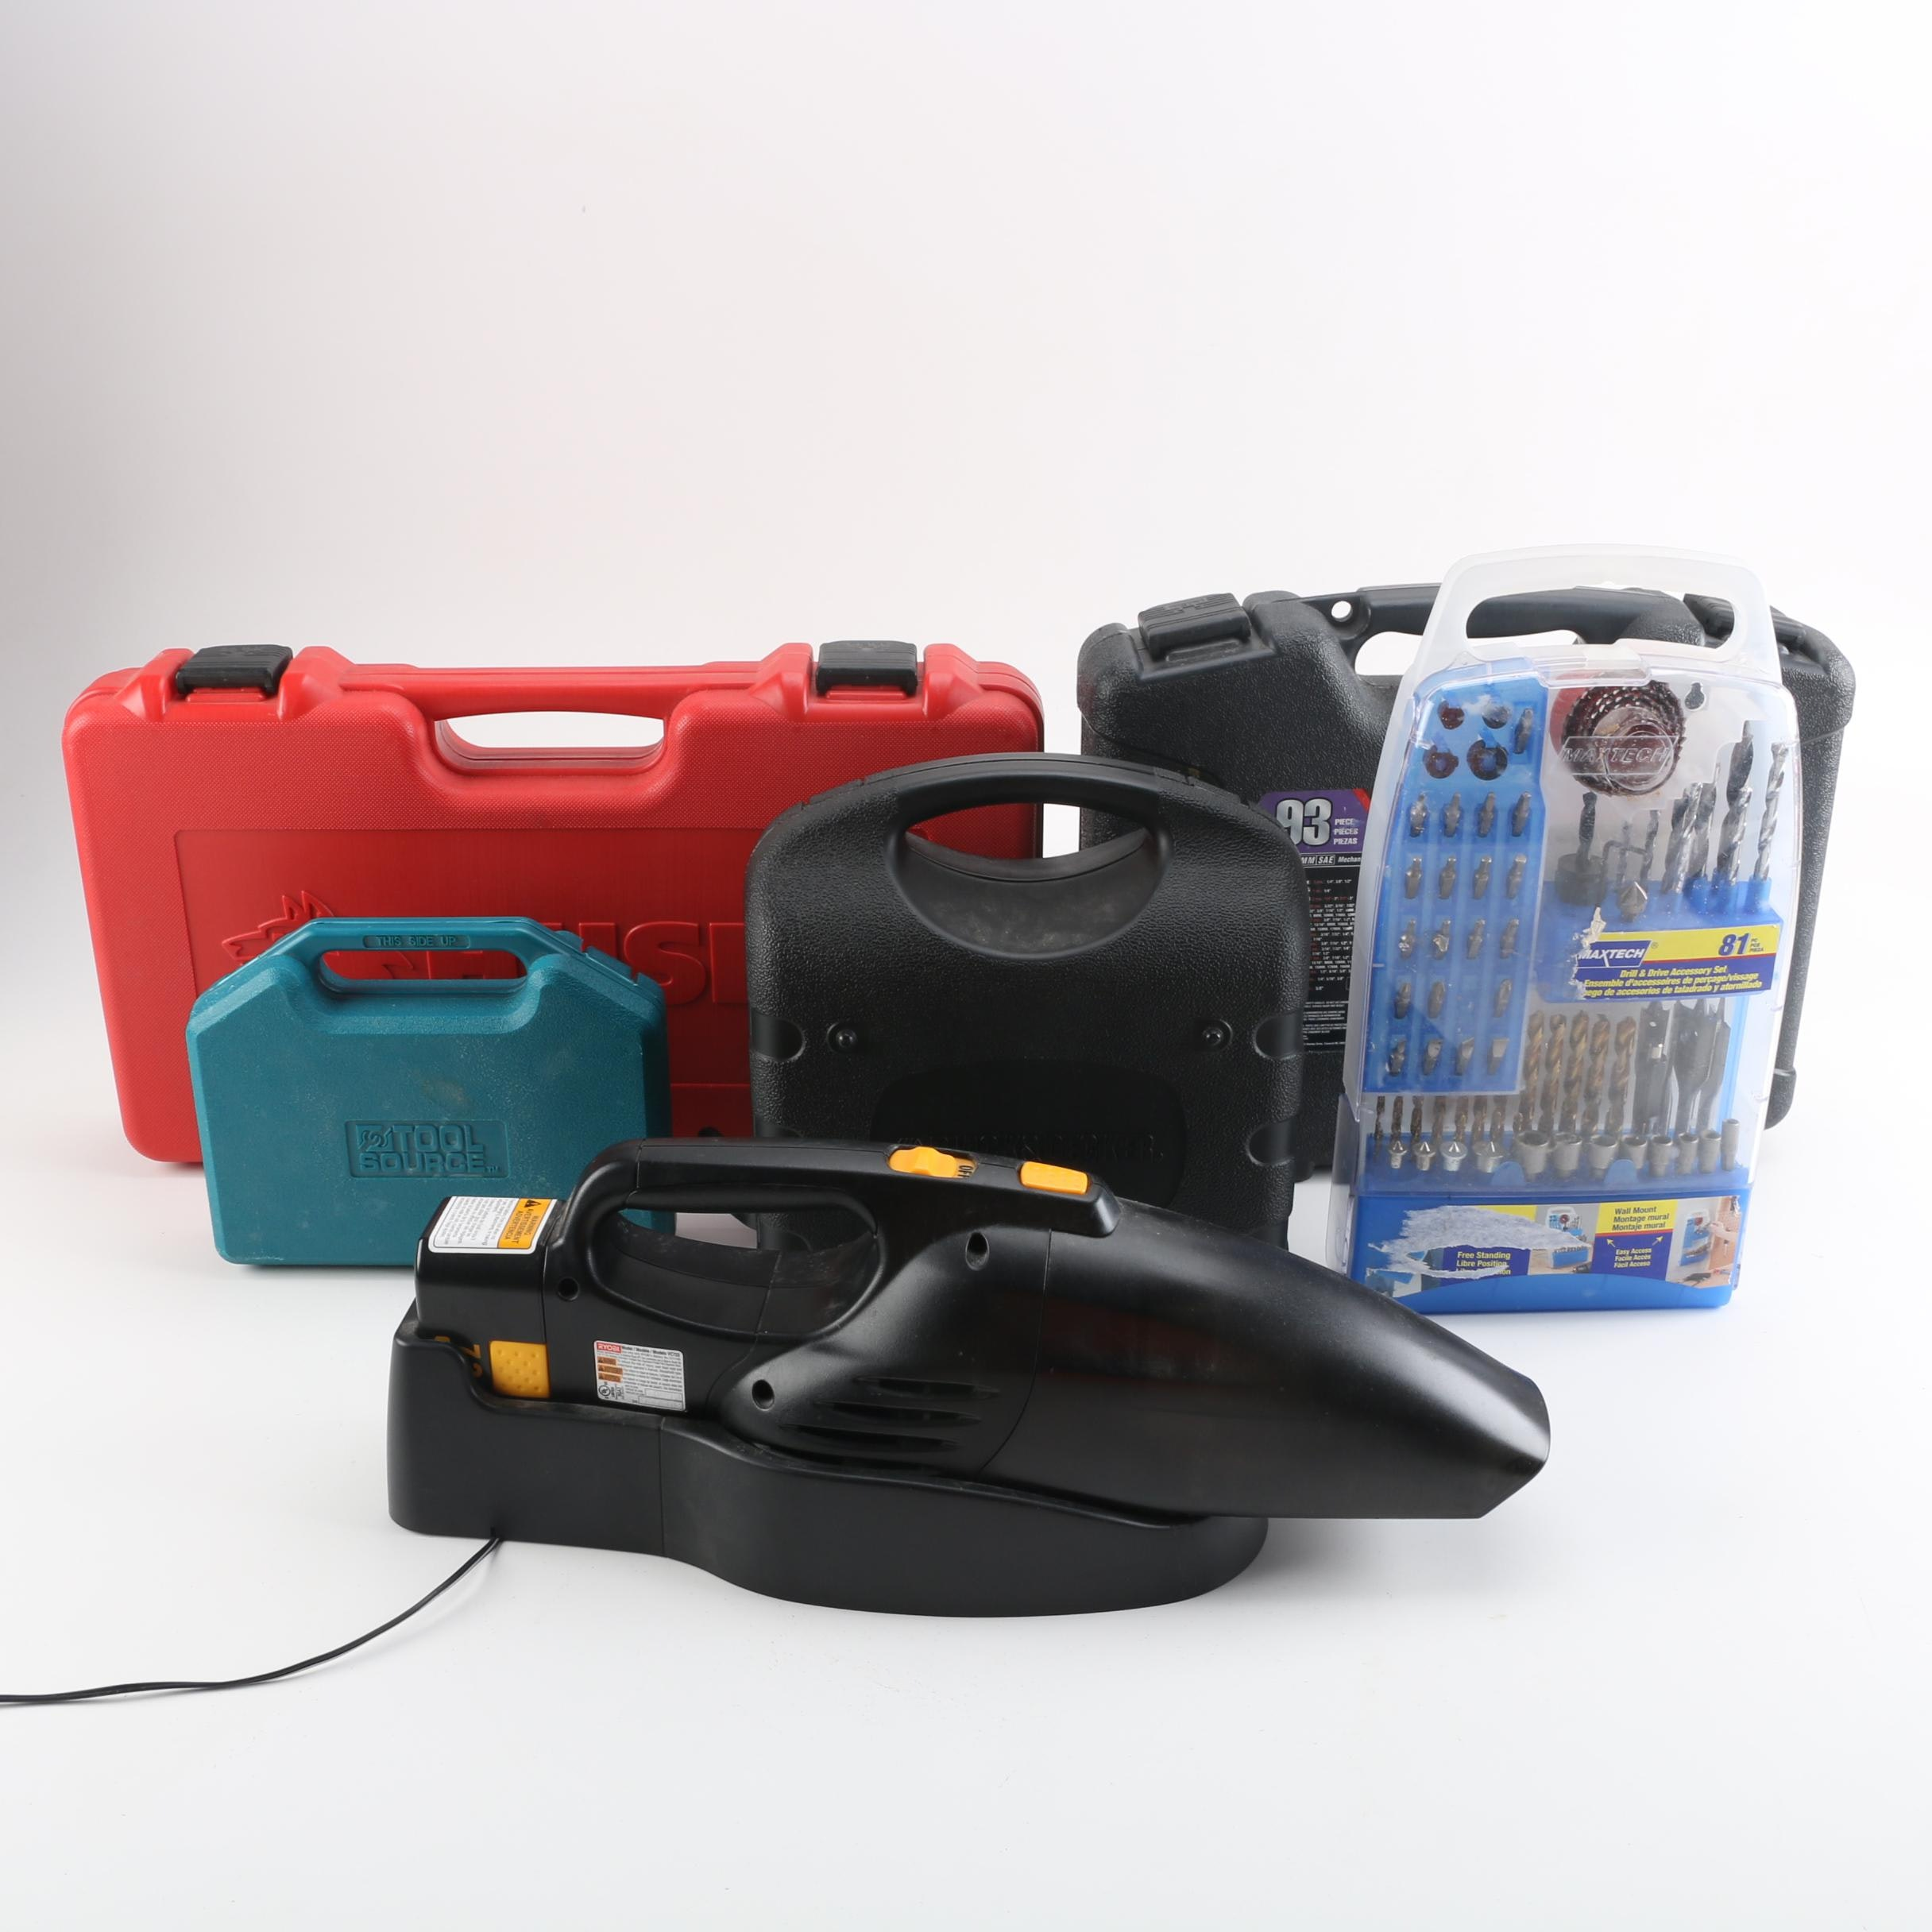 Tool Accessory Kits from Husky, Black+Decker, and More